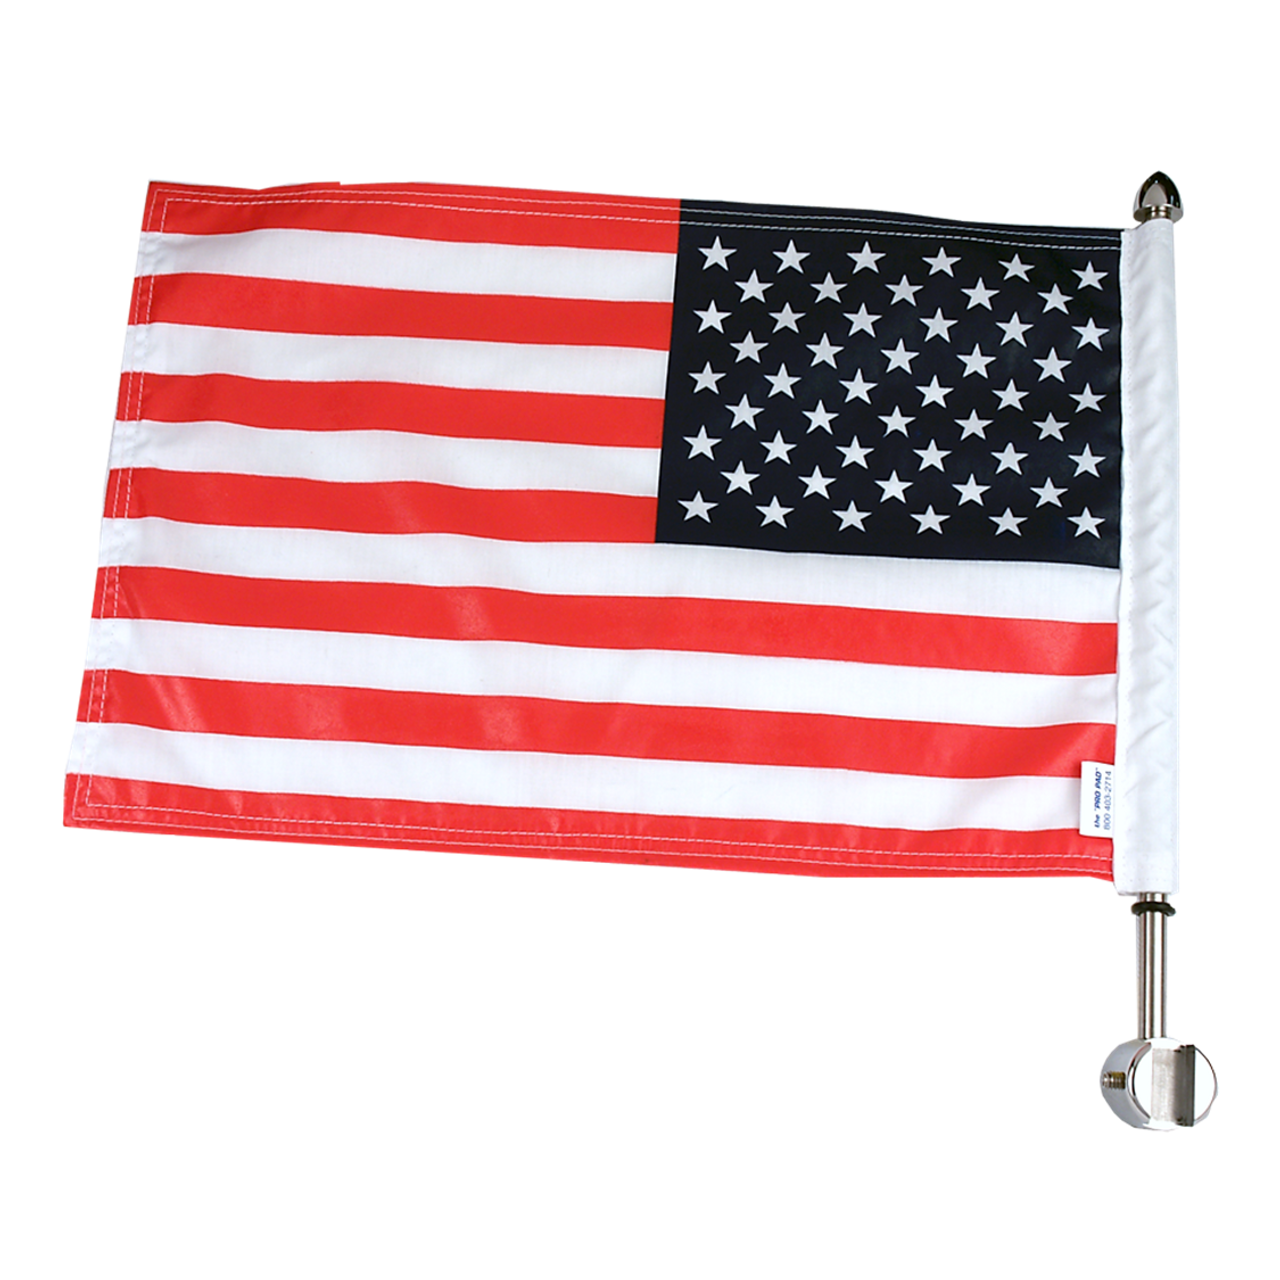 "#RFM-SQSB15 with 10x15 USA parade flag, 13"" pole and standard cone topper (for square Harley Sissy bar)"